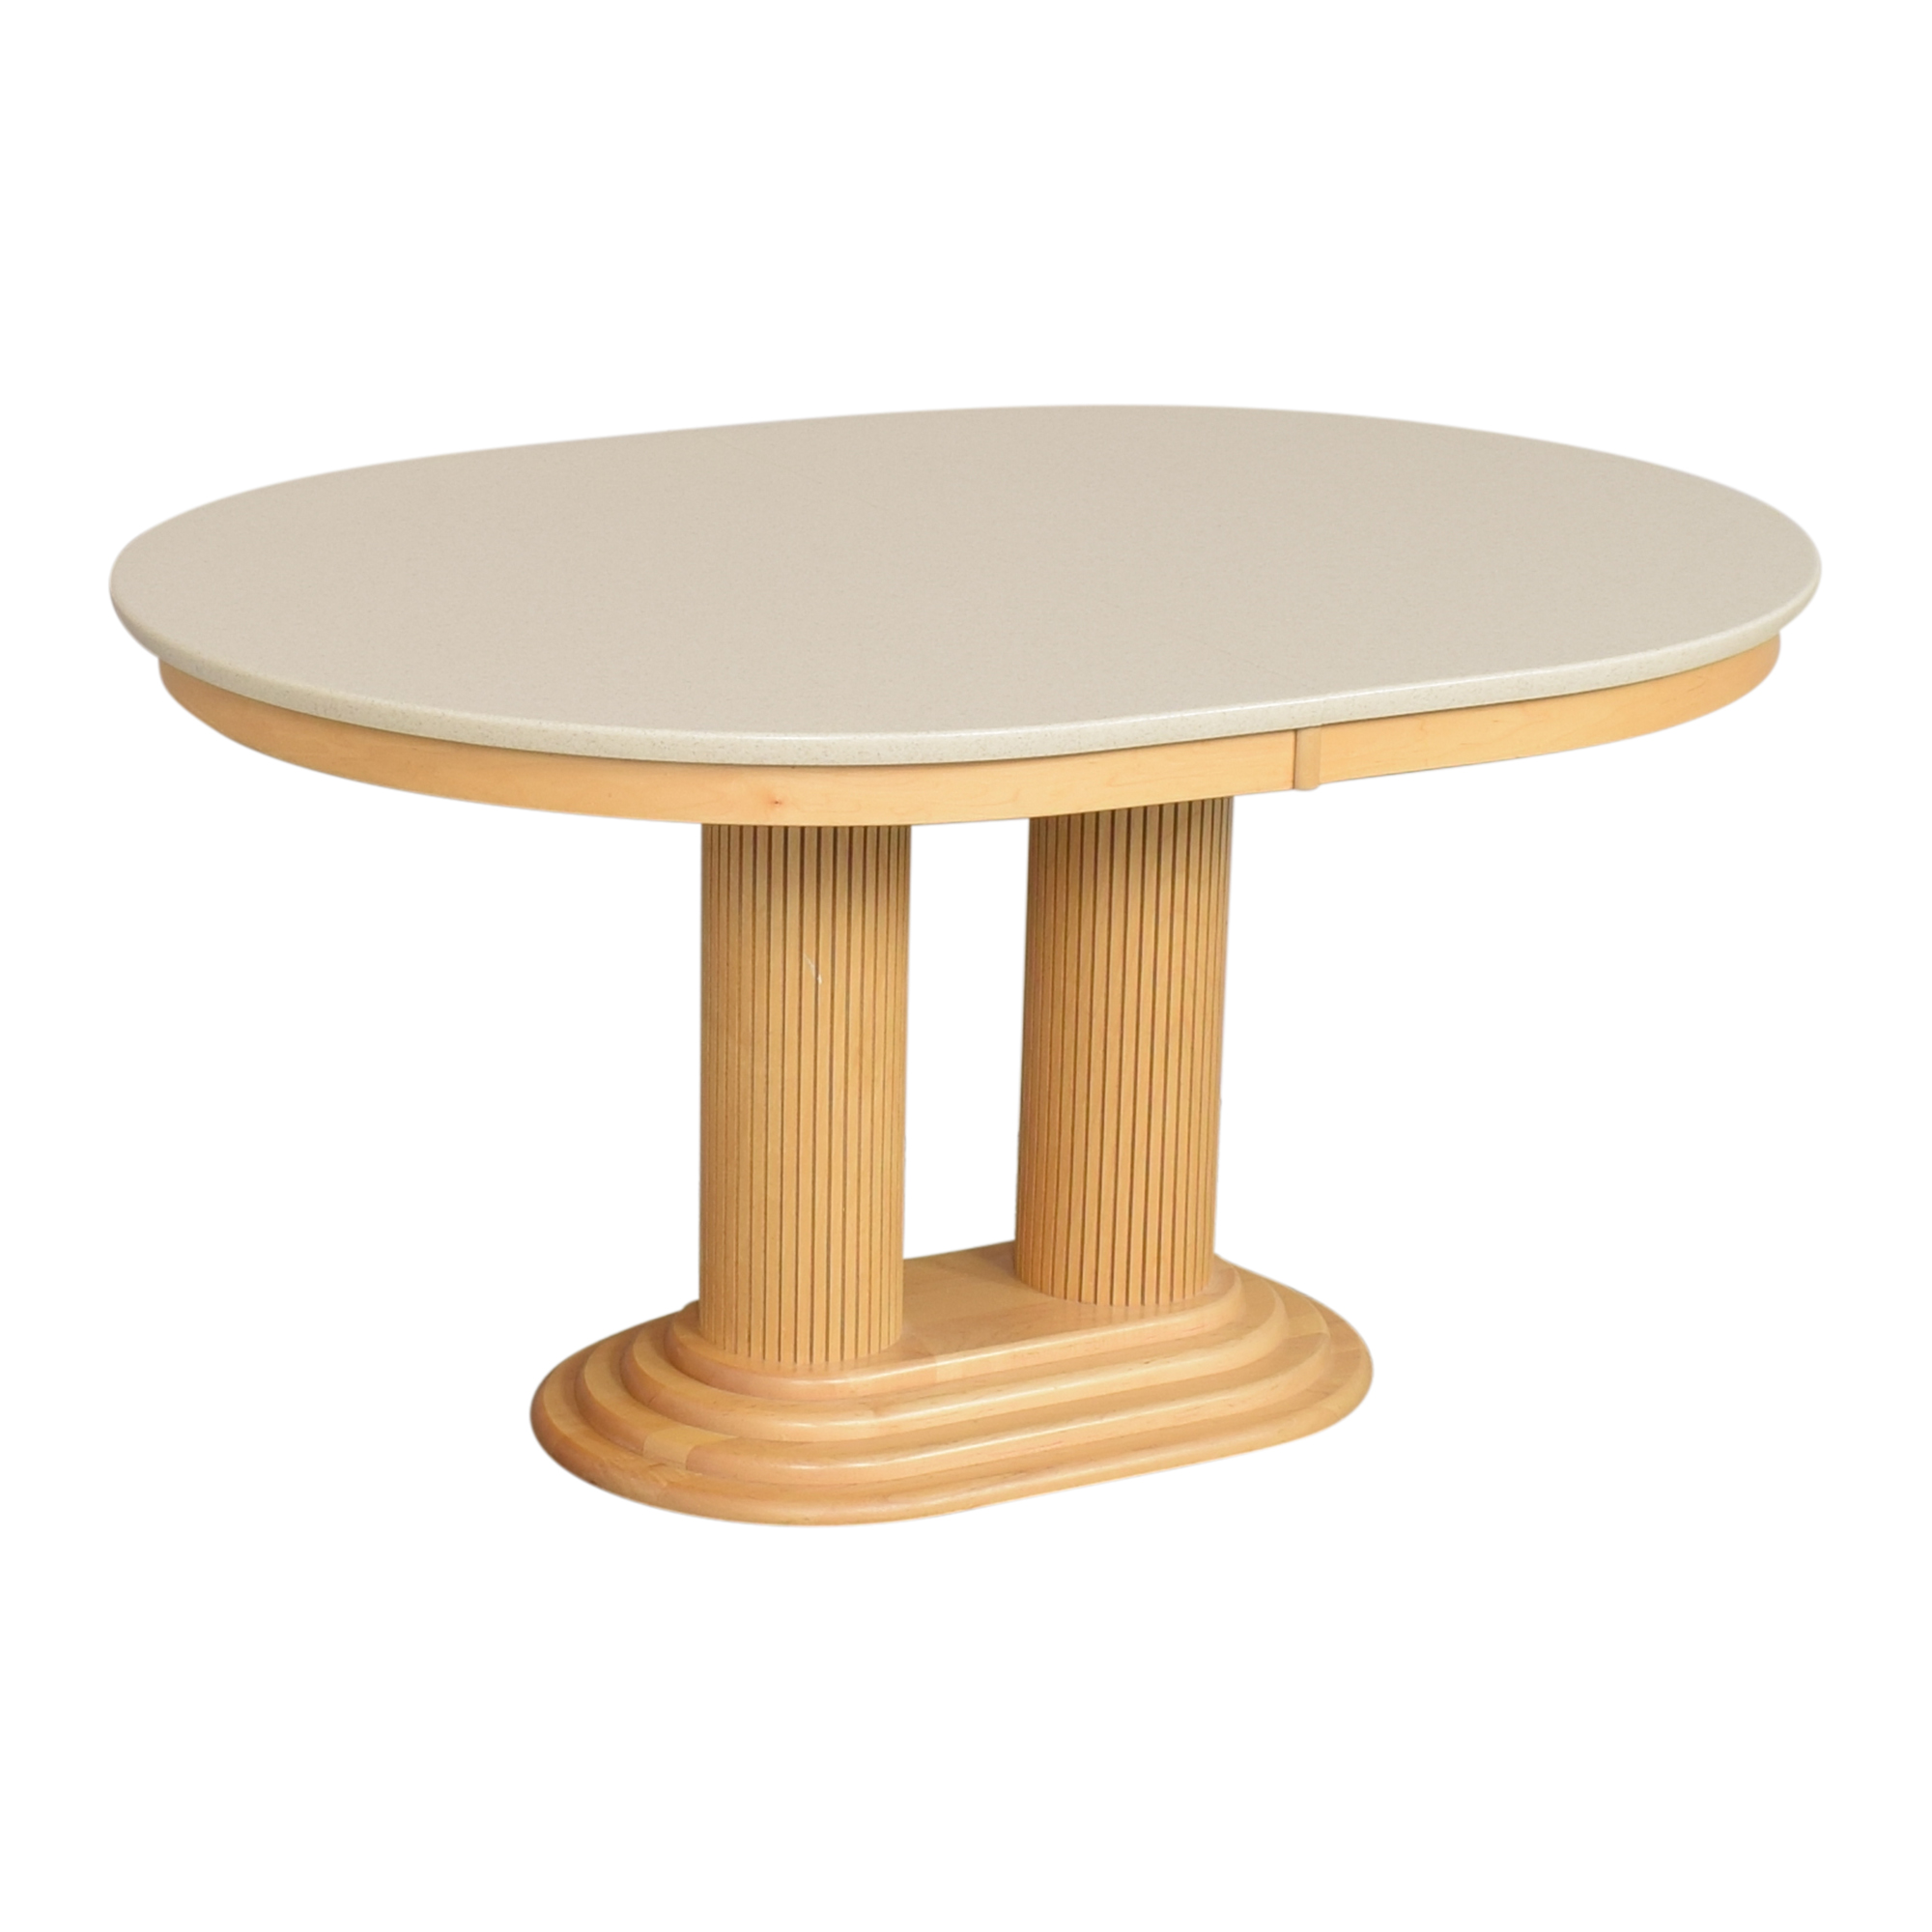 Saloom Saloom Extendable Pedestal Dining Table dimensions